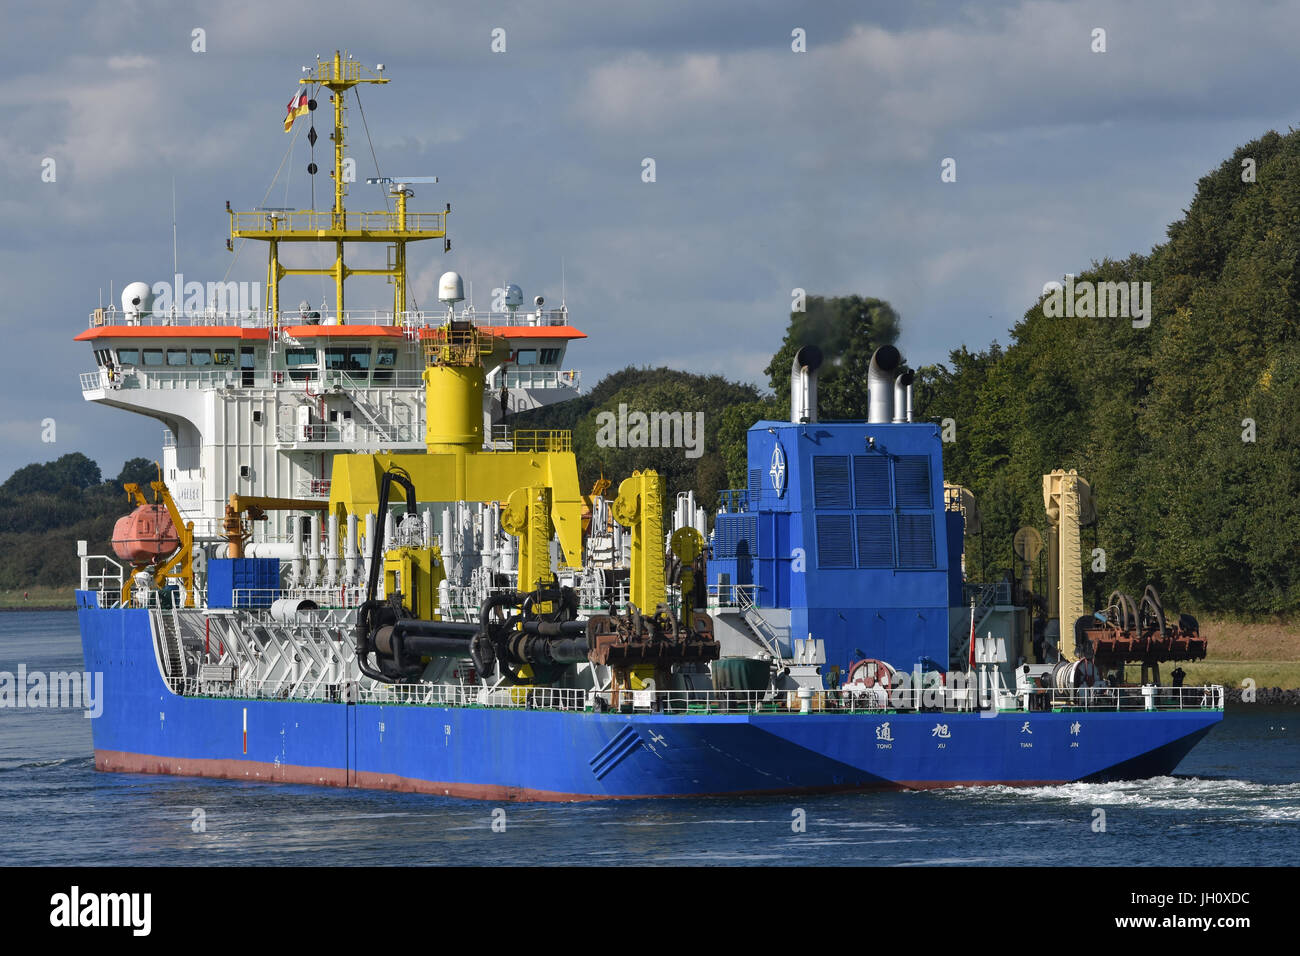 Chinese Hopperdredger Tong Xu Stock Photo